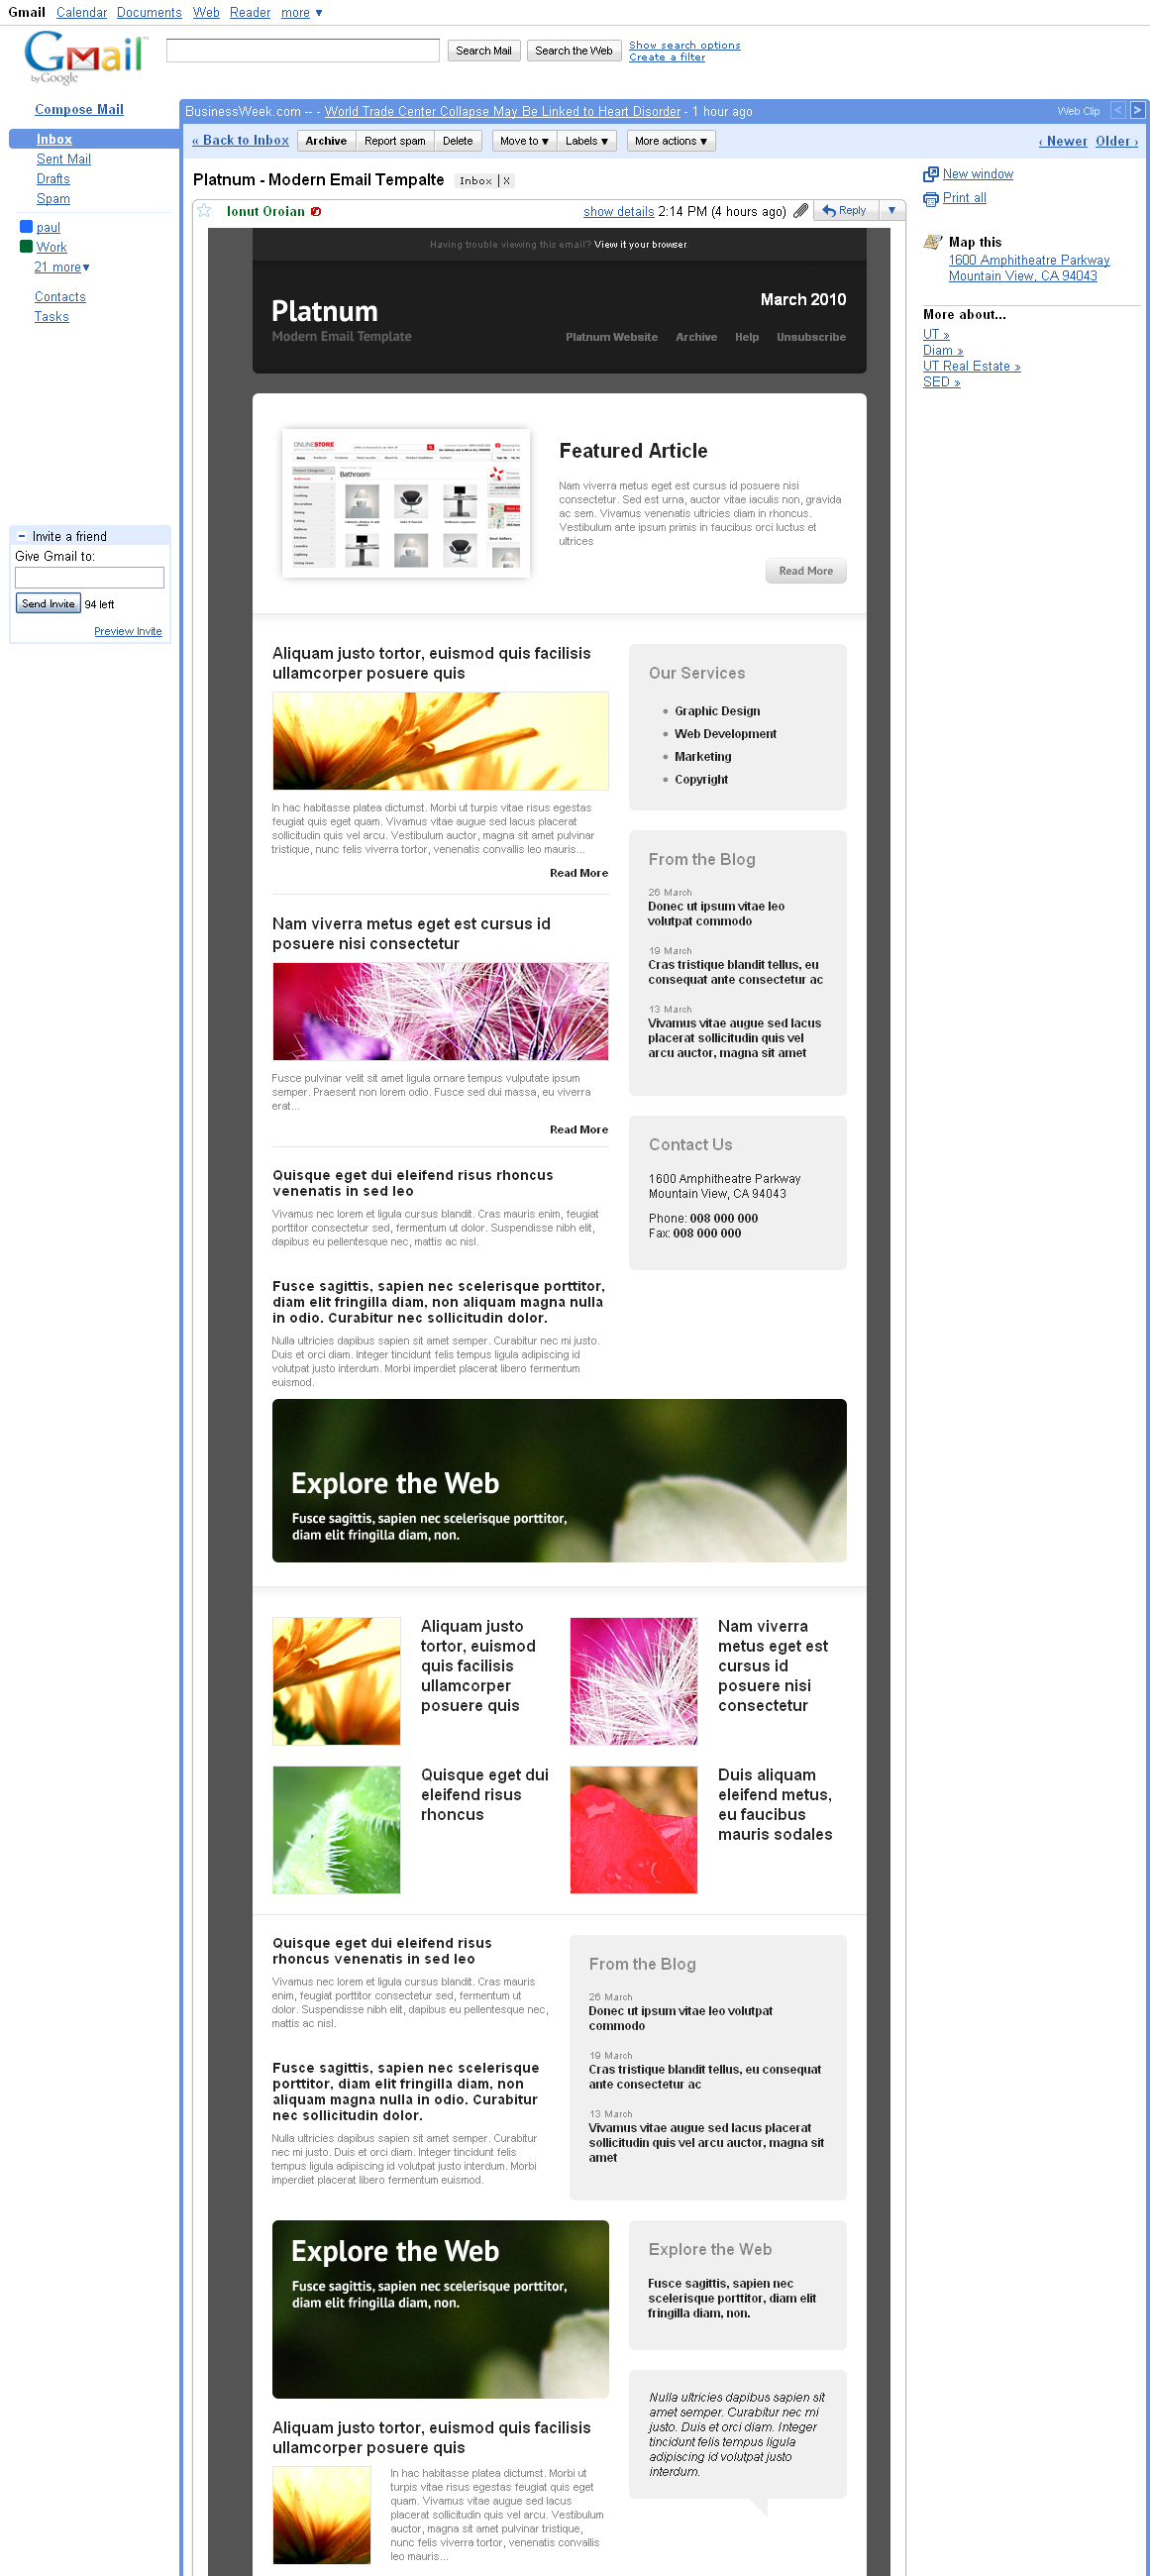 Platnum Email Template, 6 Layouts, 8 Colors - GMail - All elements listed.